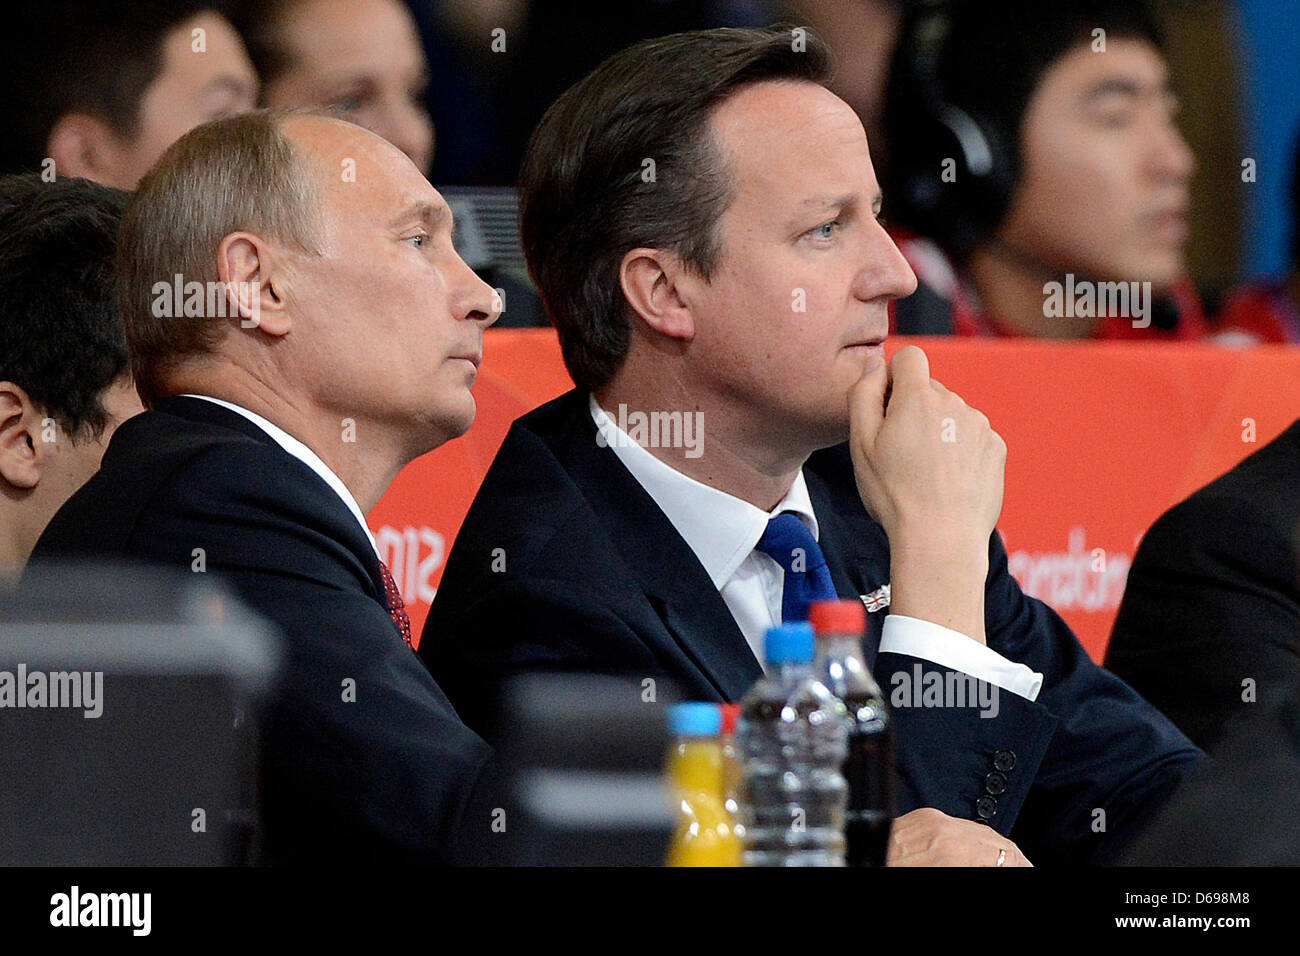 Russian President Vladimir Putin (L) and british President David Cameron attend the London 2012 Olympic Games Judo Stock Photo